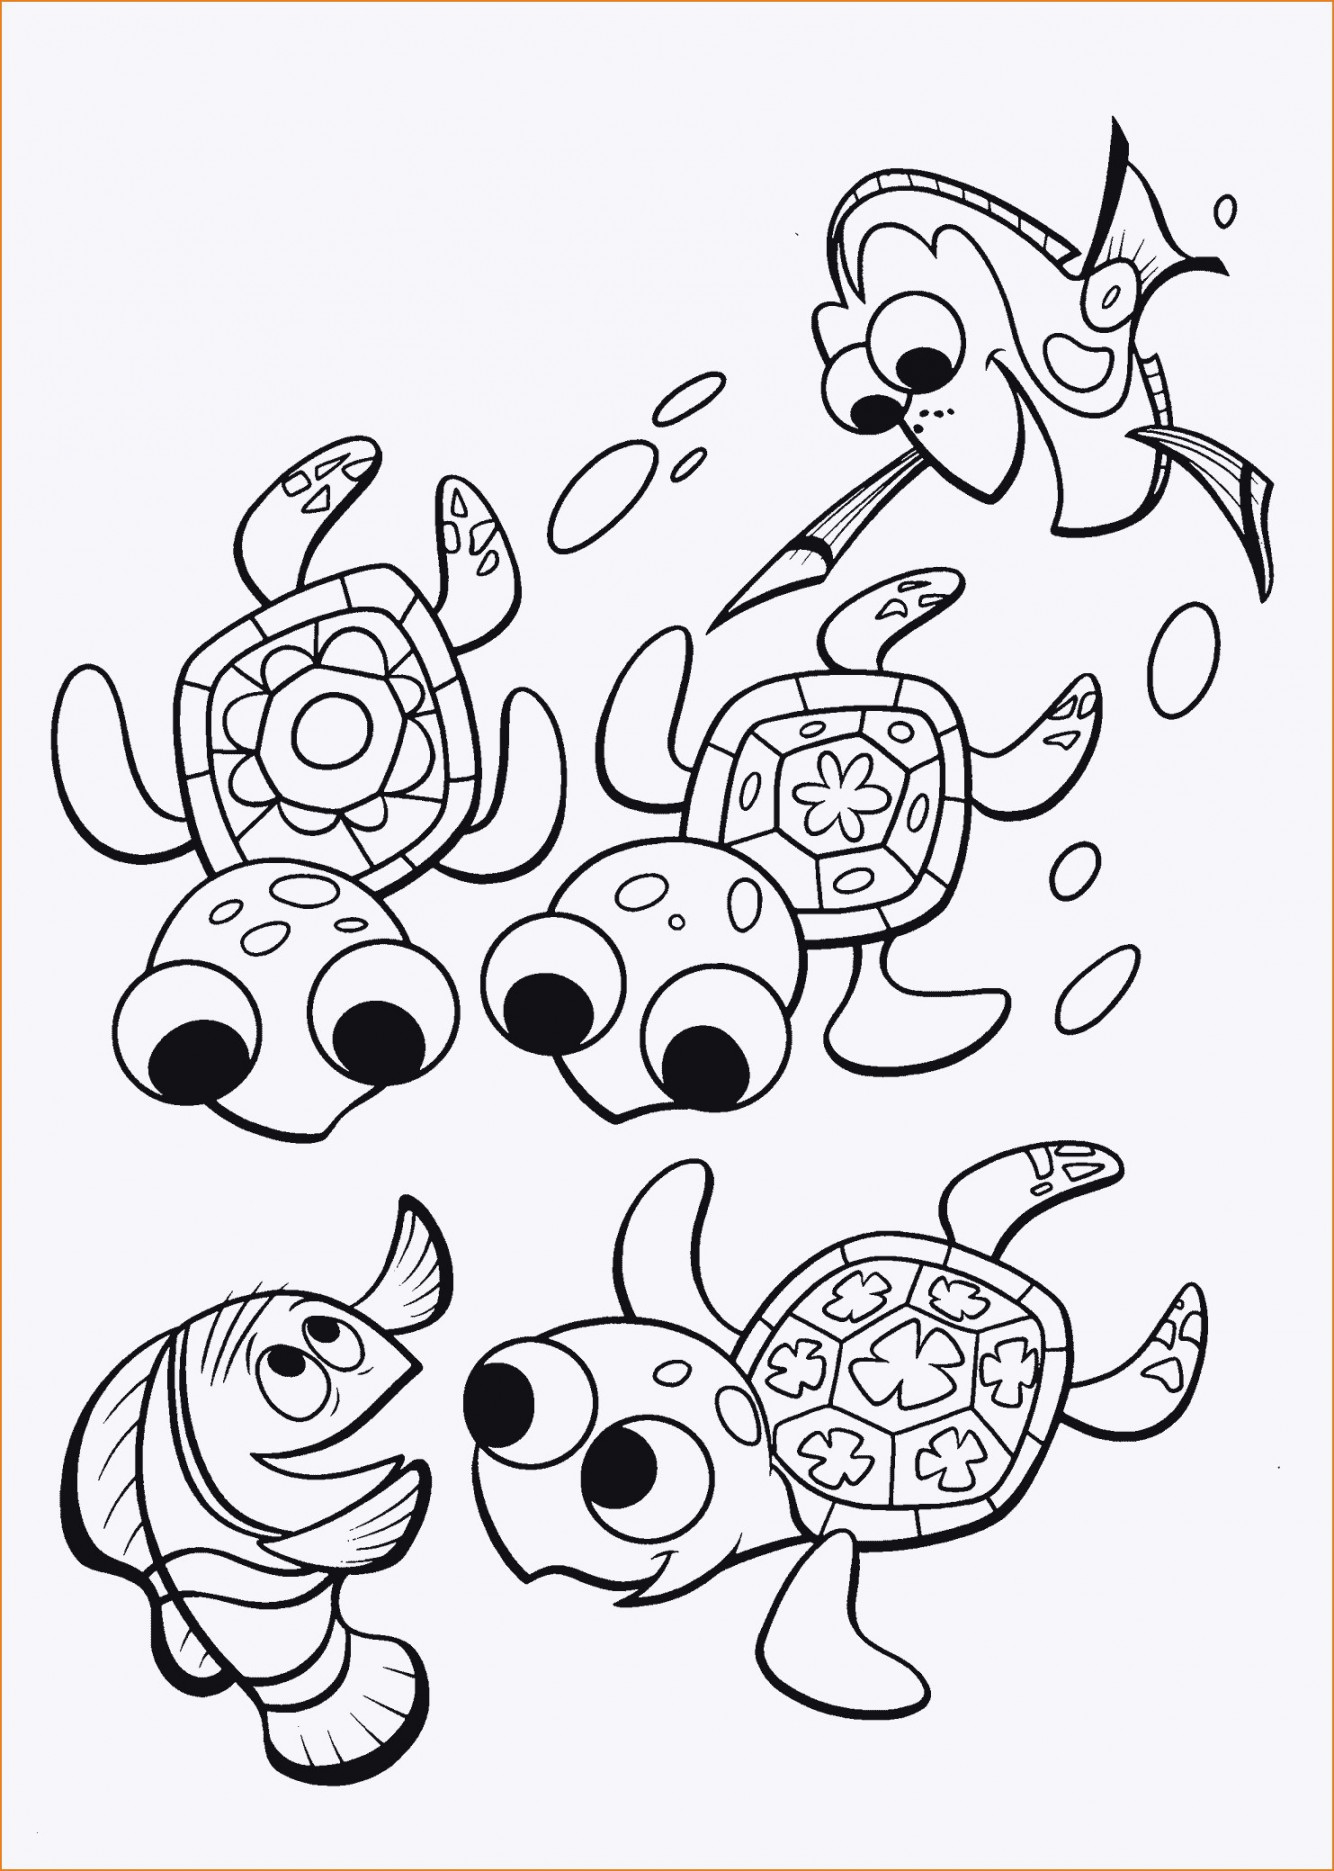 Finding Nemo Coloring Pages Finding Dory Coloring Pages Best Collections Of 32 Ausmalbilder Nemo